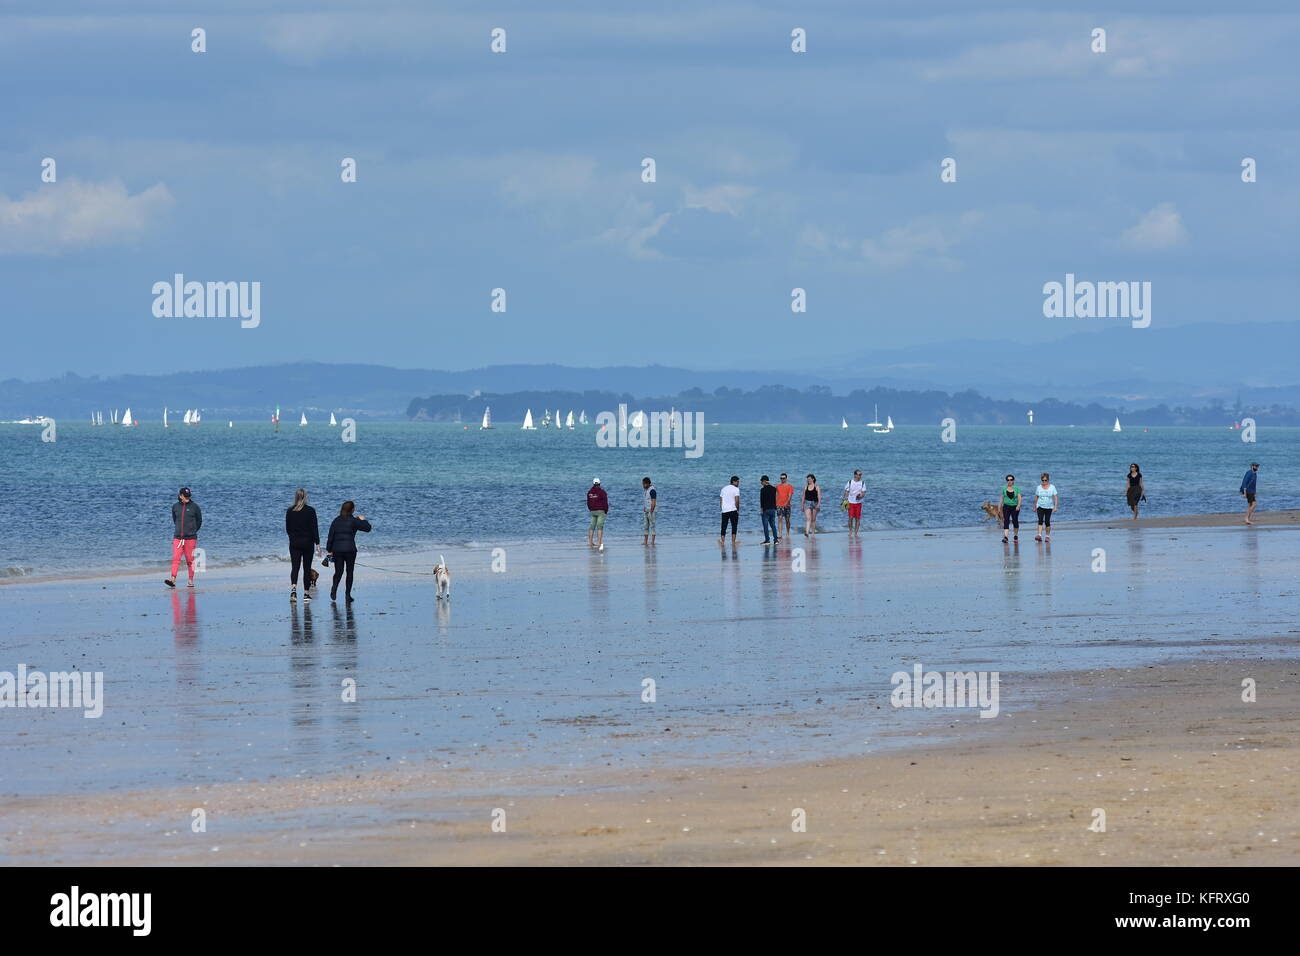 People walking on flat sandy ocean beach of Takapuna in Auckland on cloudy day. Stock Photo